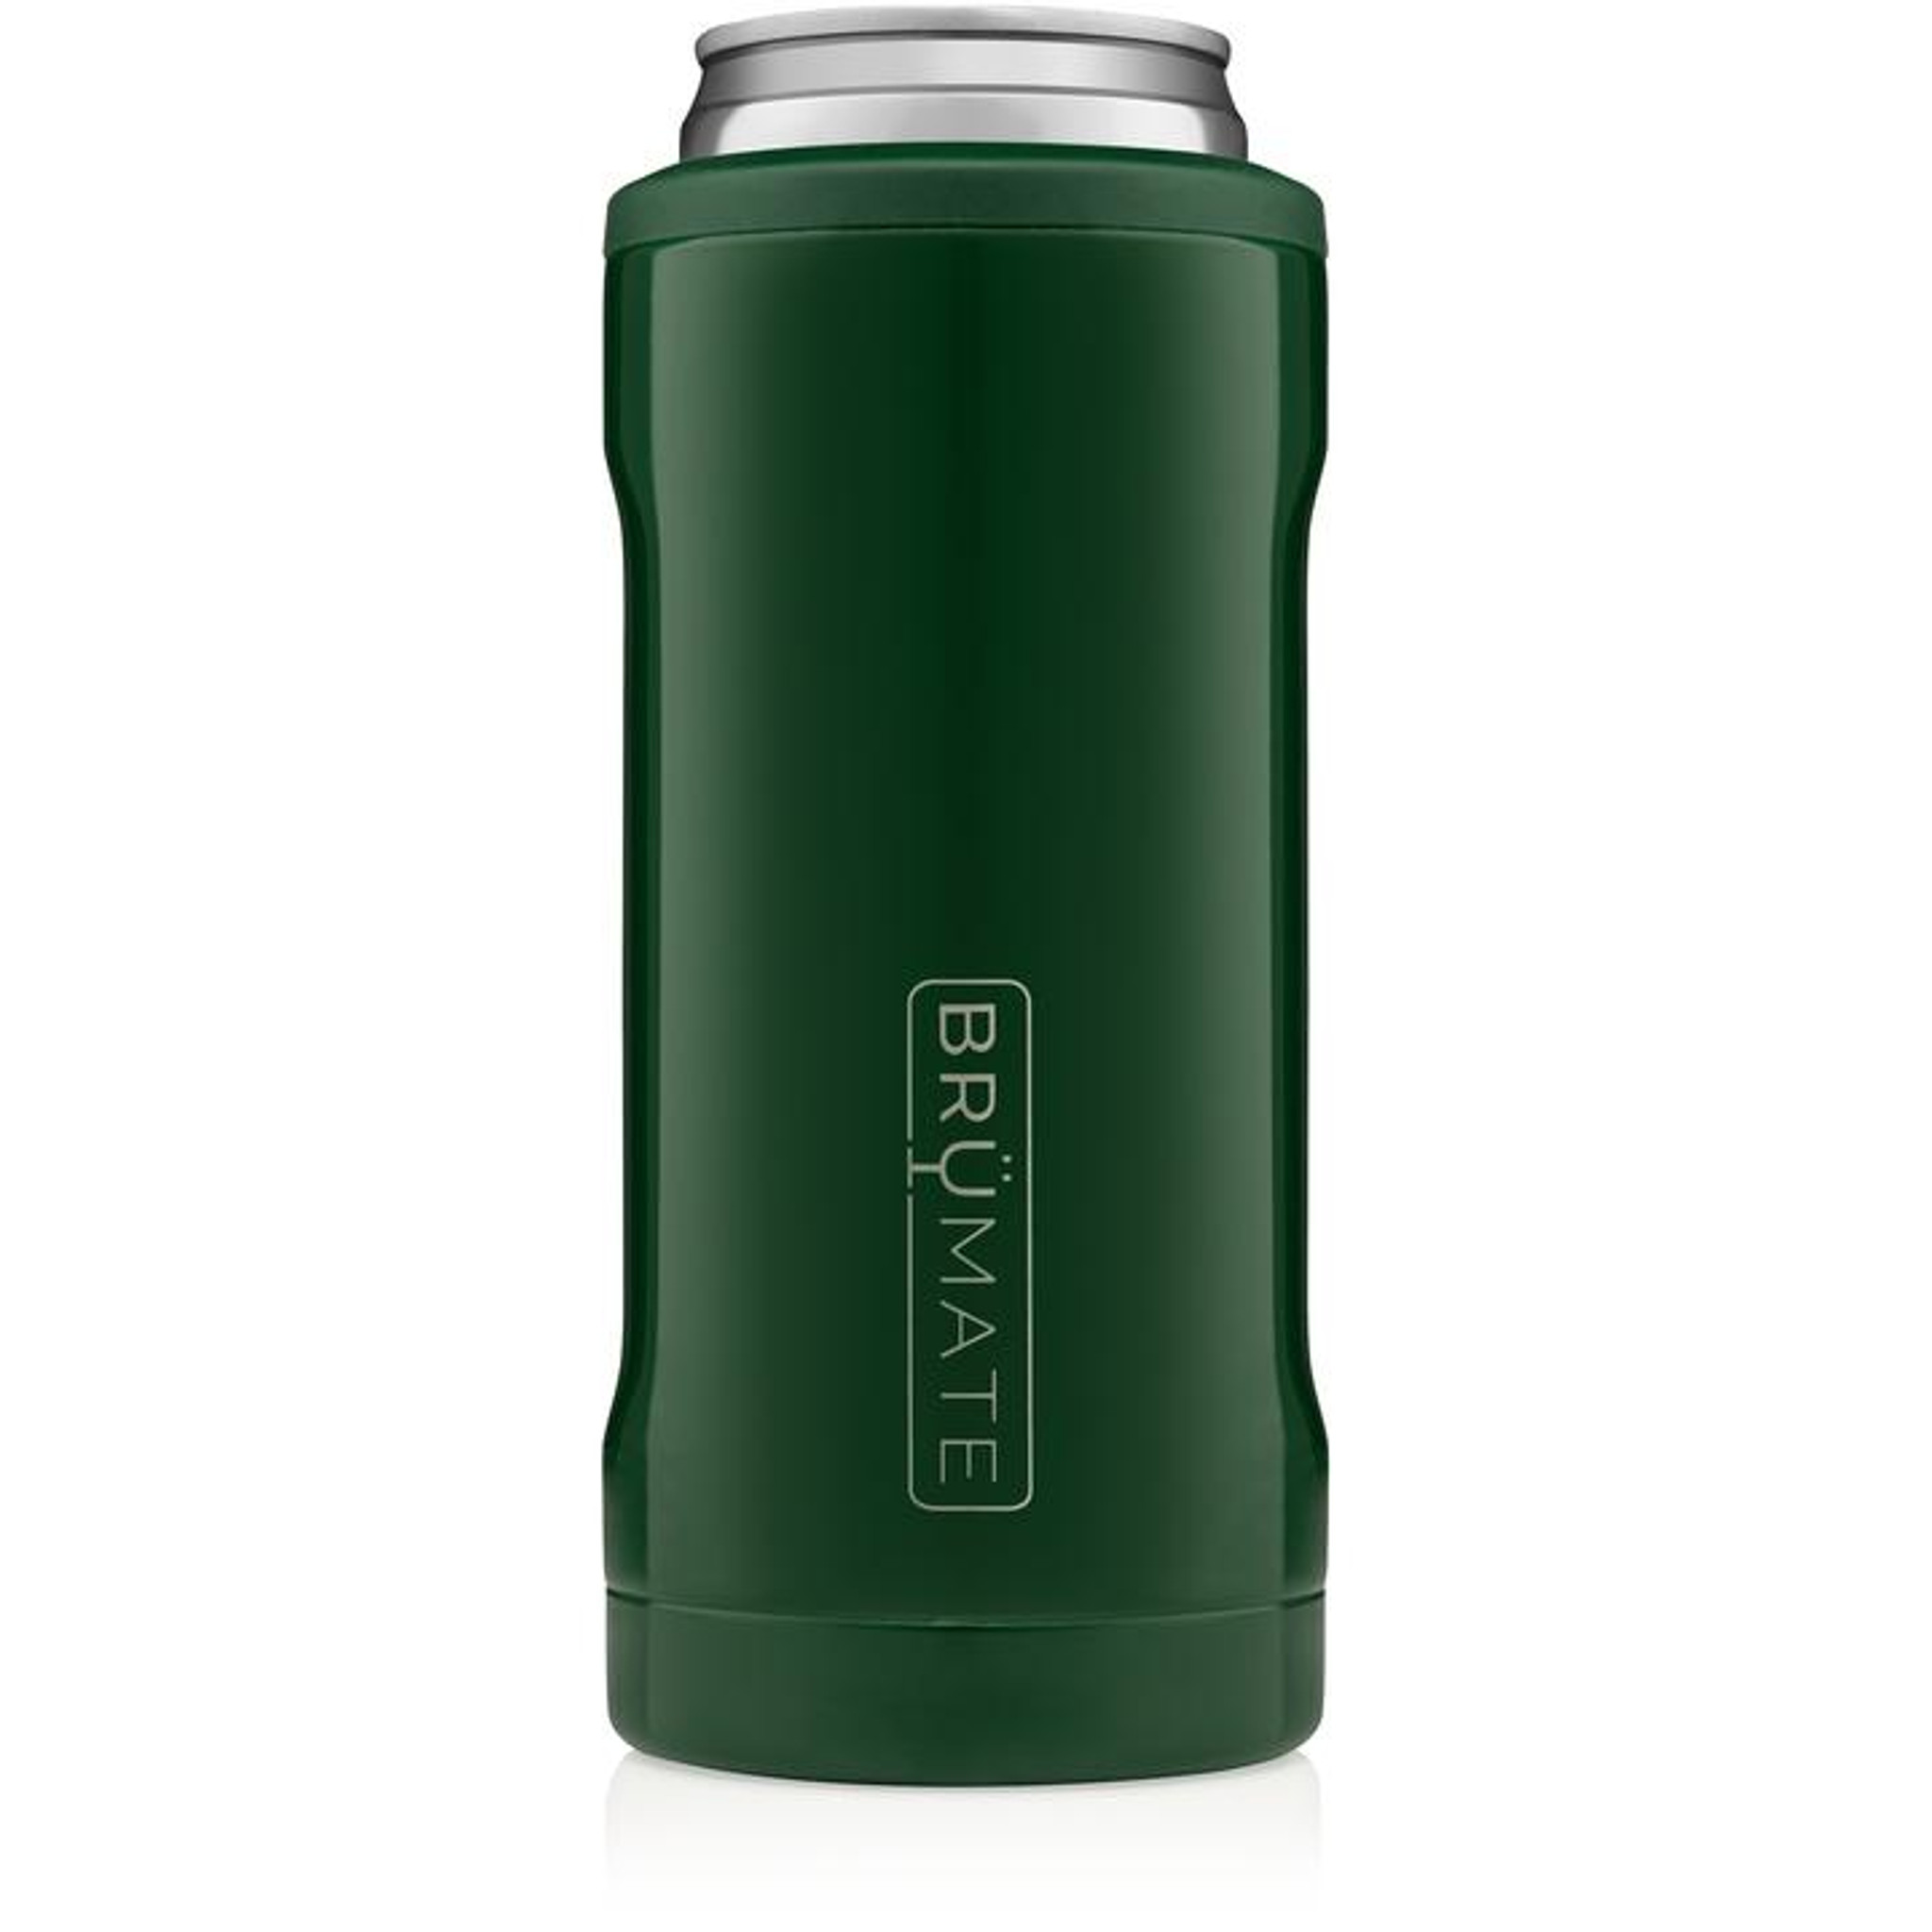 Brumate Slim Hopsulator - Emerald Green